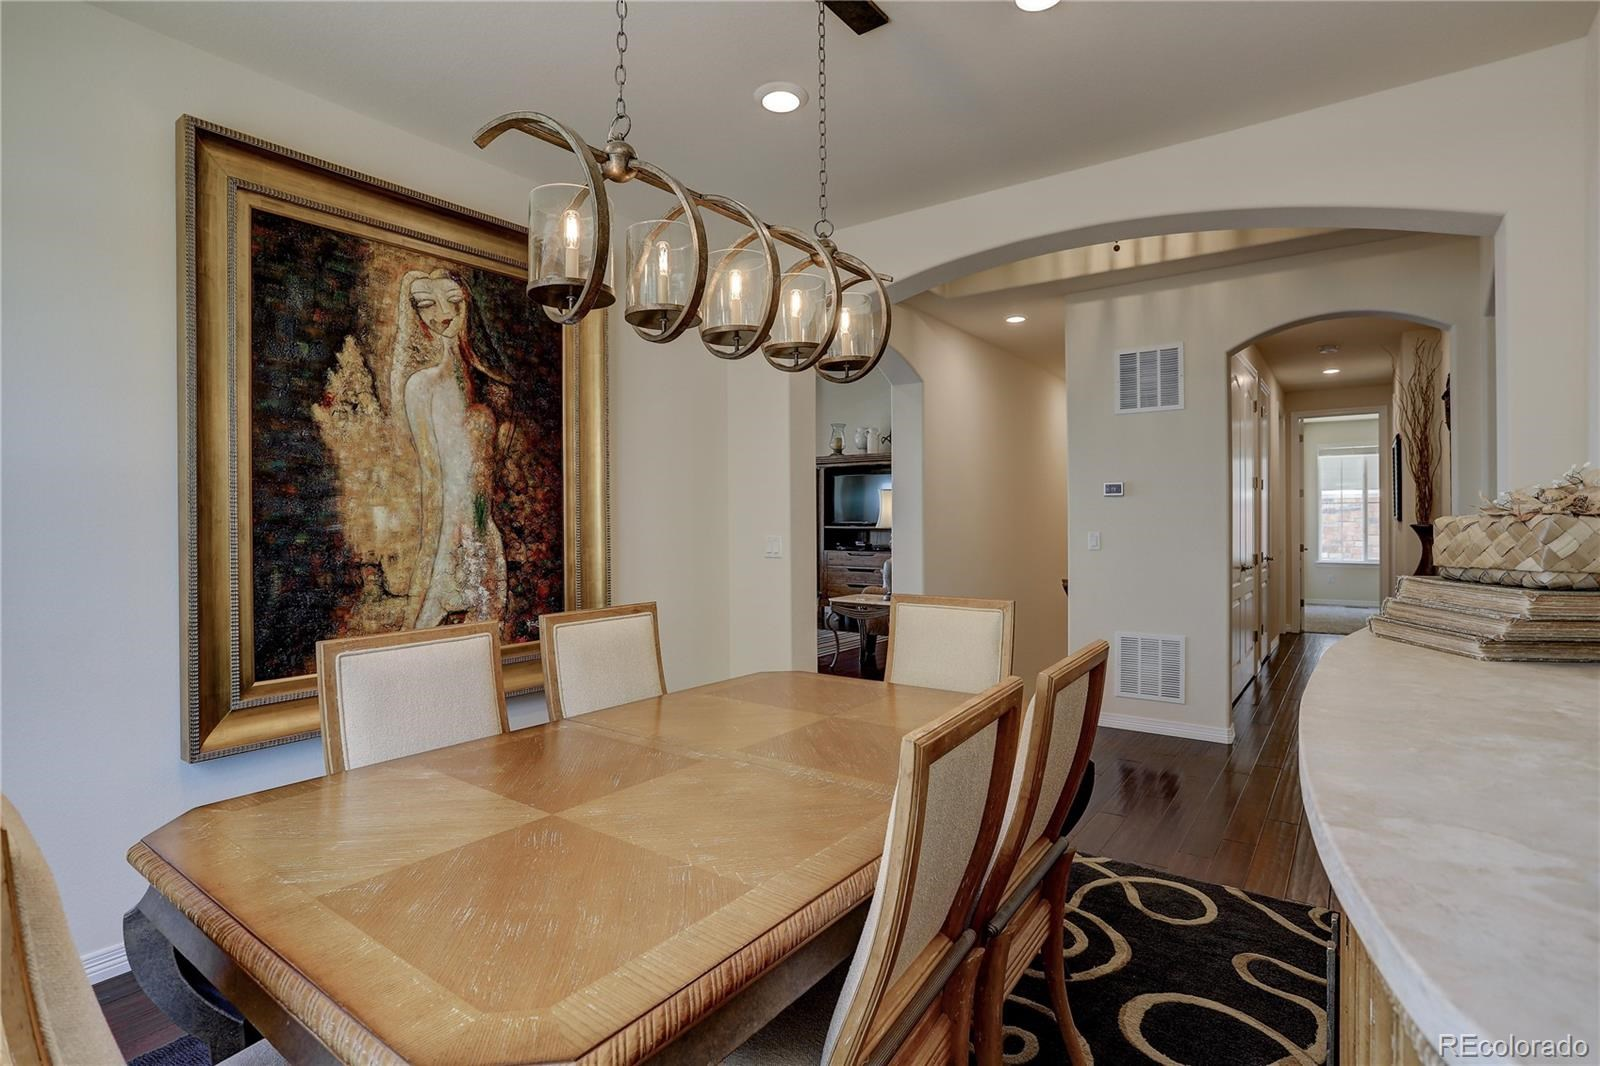 MLS# 8545425 - 9 - 7598 S Country Club Parkway, Aurora, CO 80016